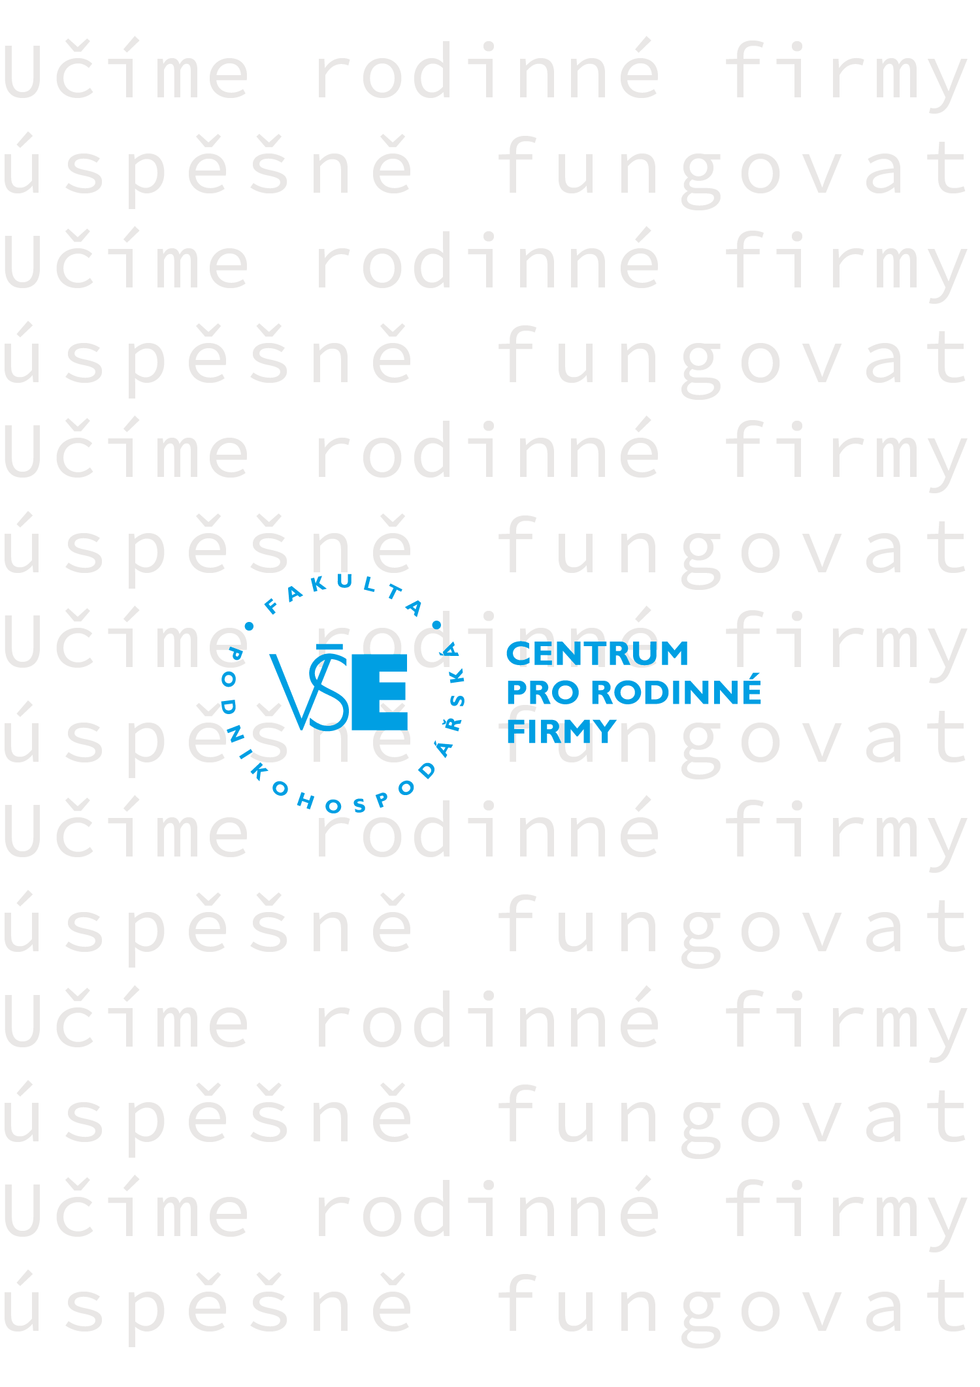 ucime-fungovat.png